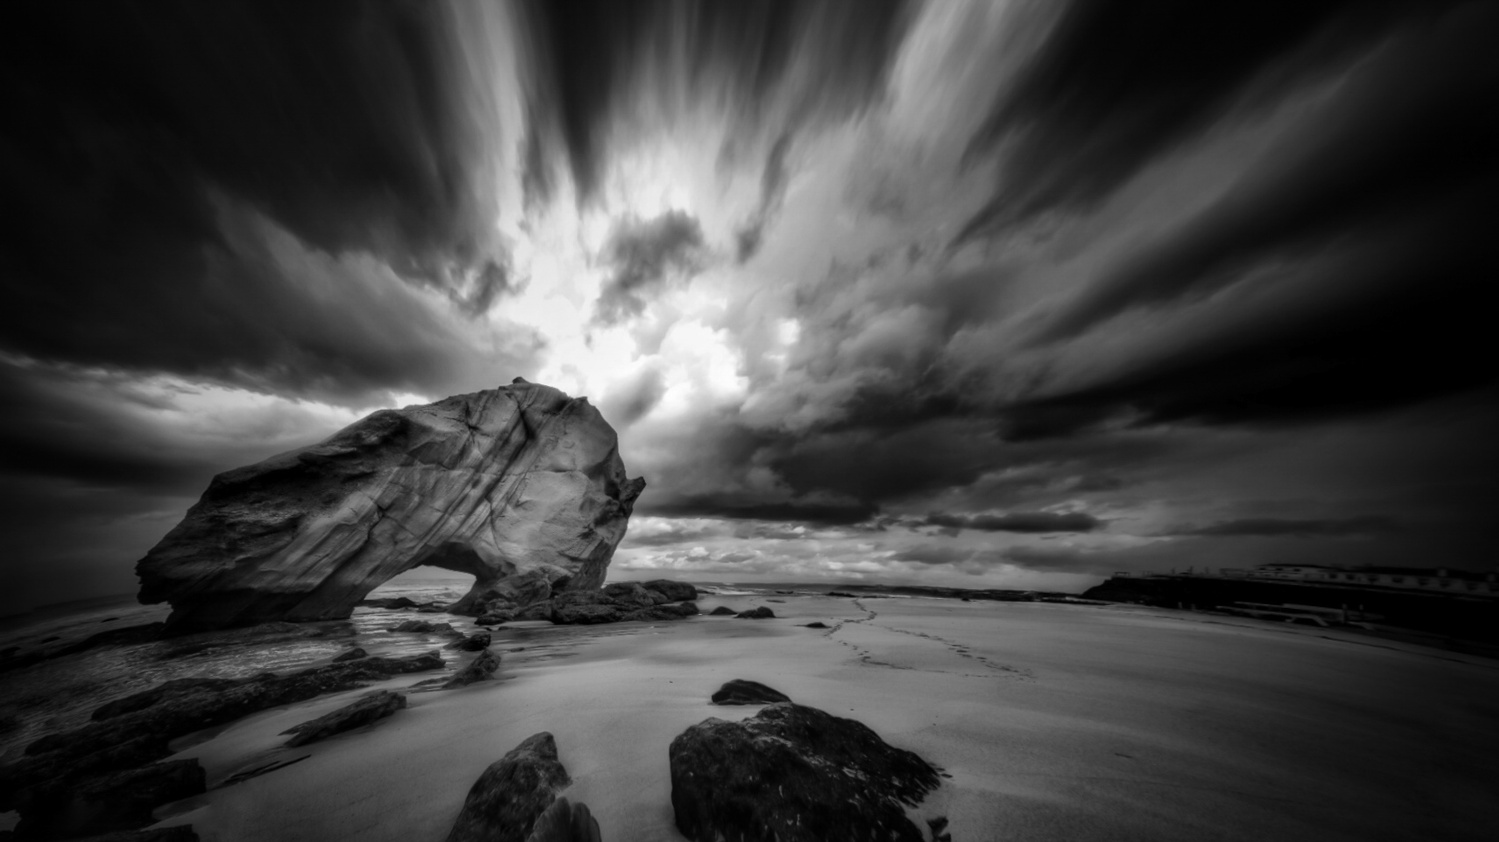 God's Fury by Miguel Martins